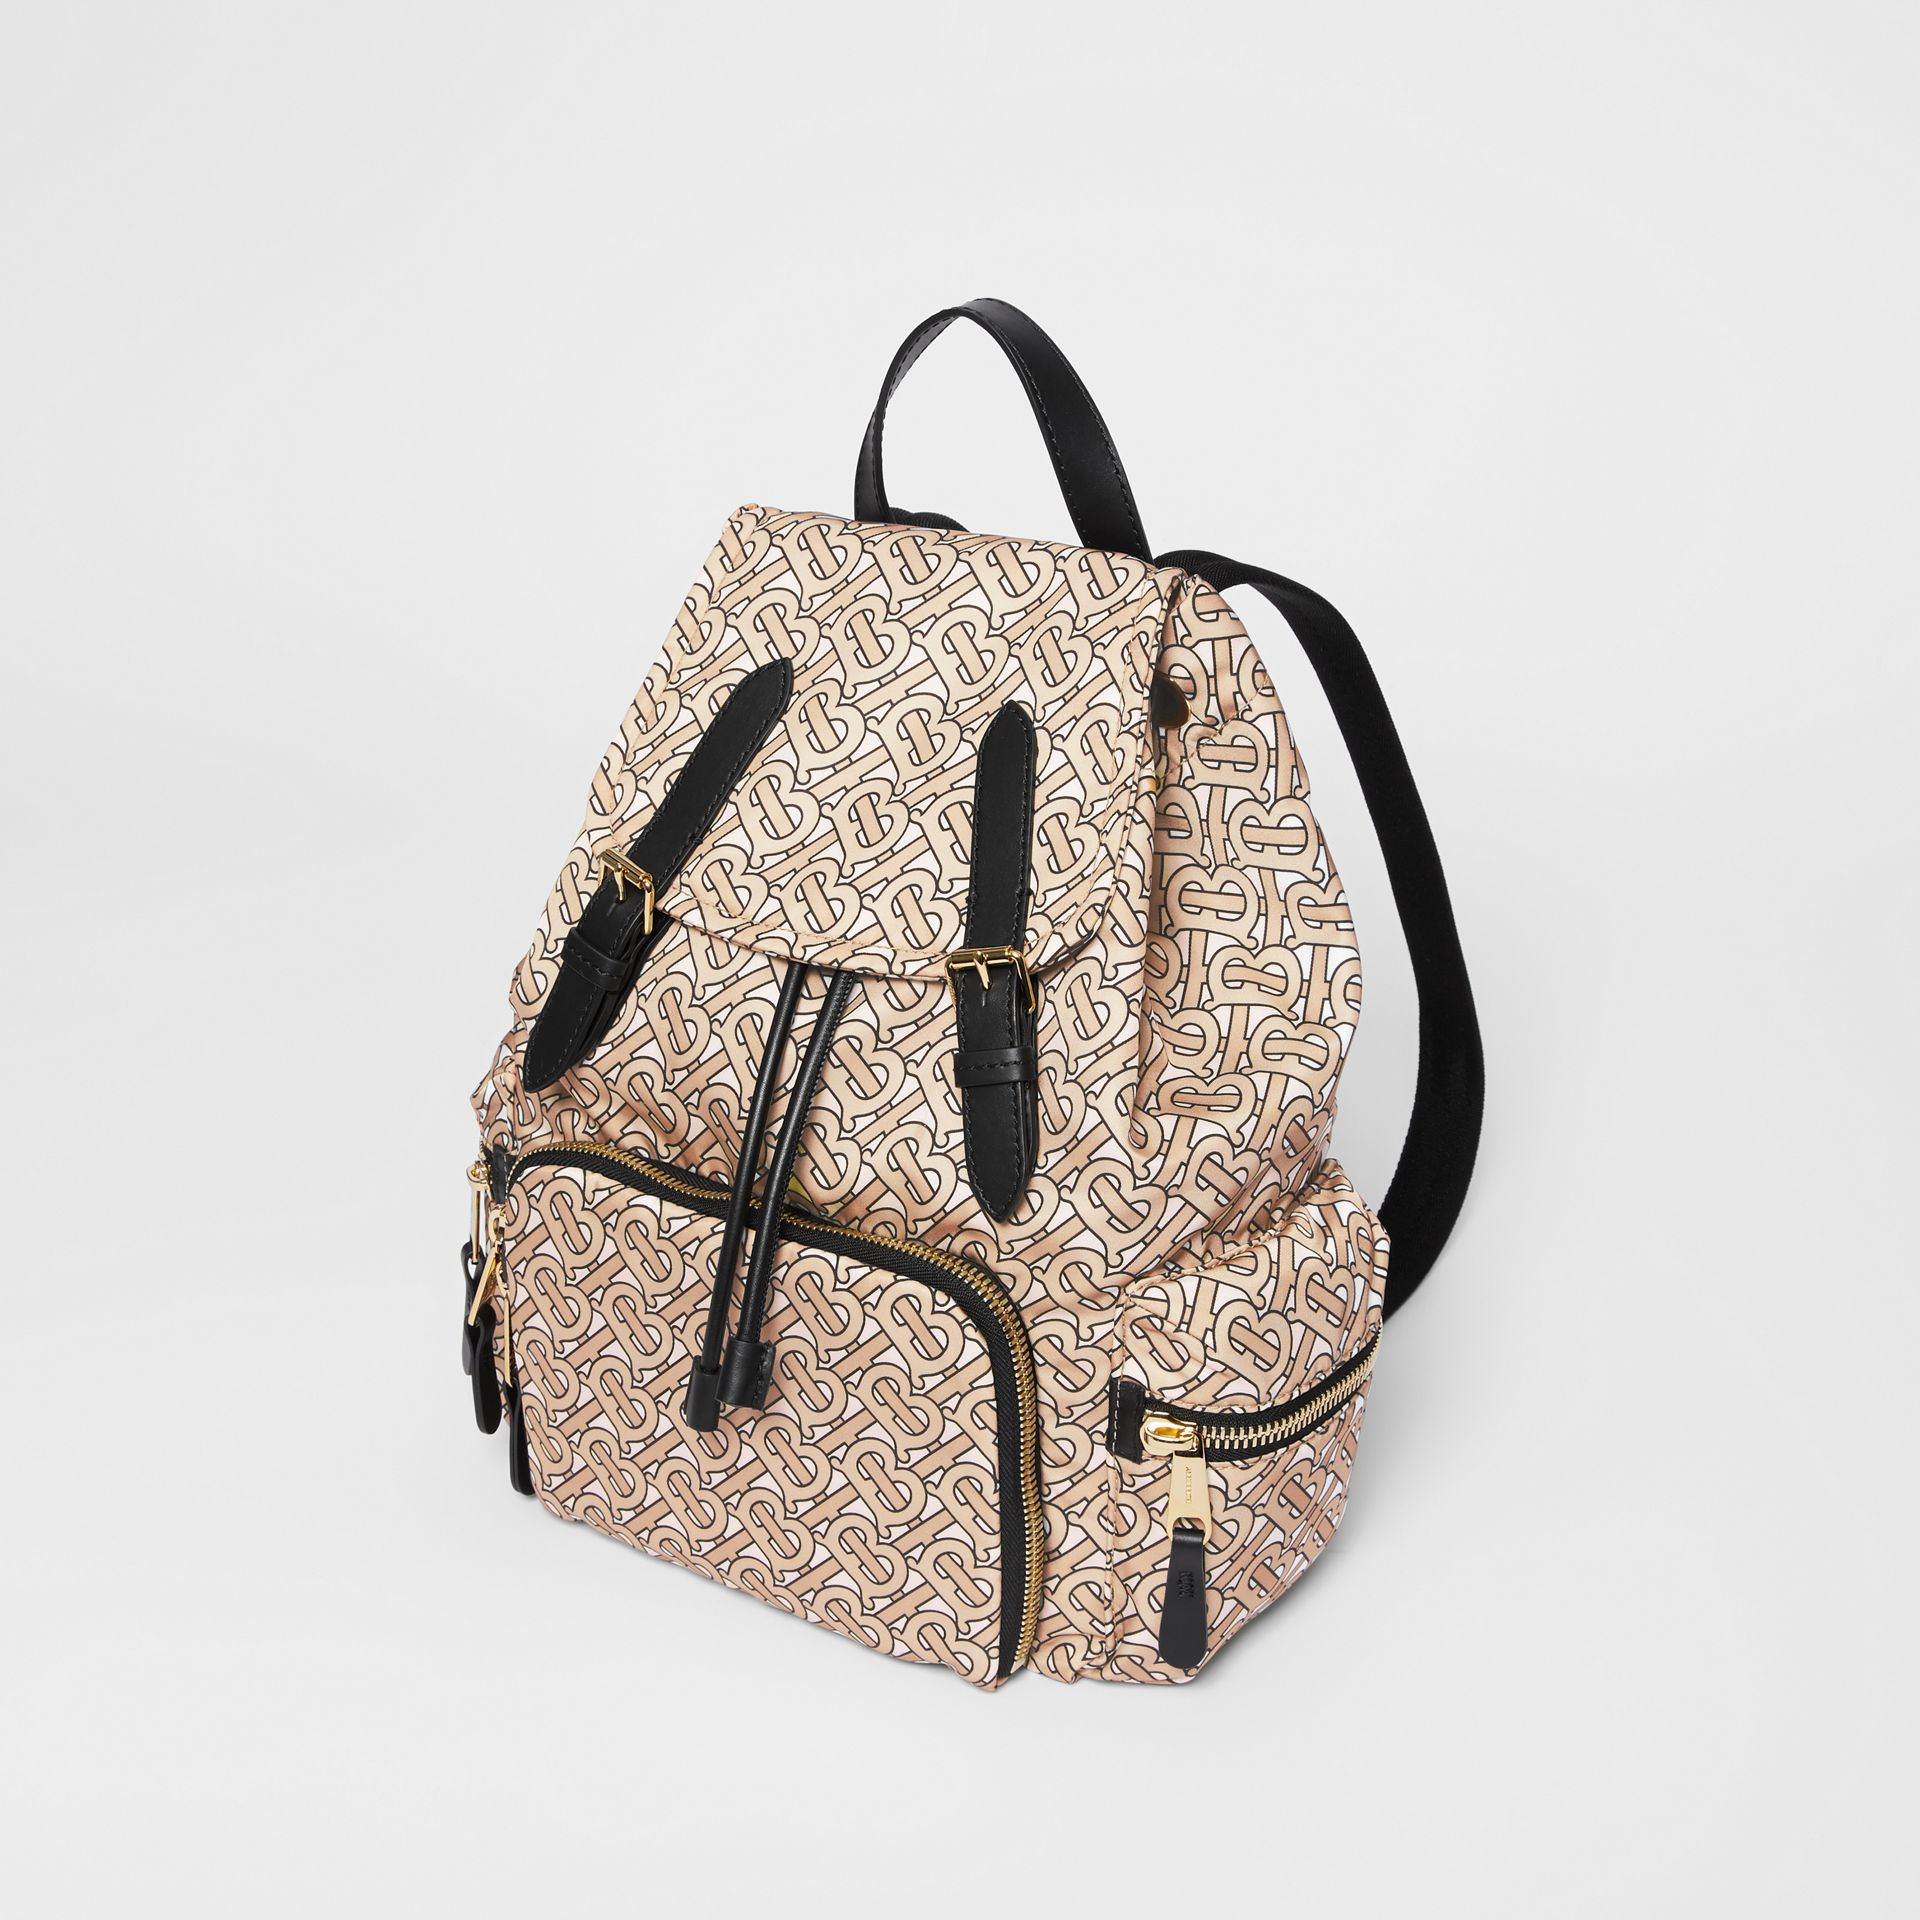 Sac The Rucksack moyen en nylon Monogram (Beige) - Femme | Burberry Canada - photo de la galerie 2